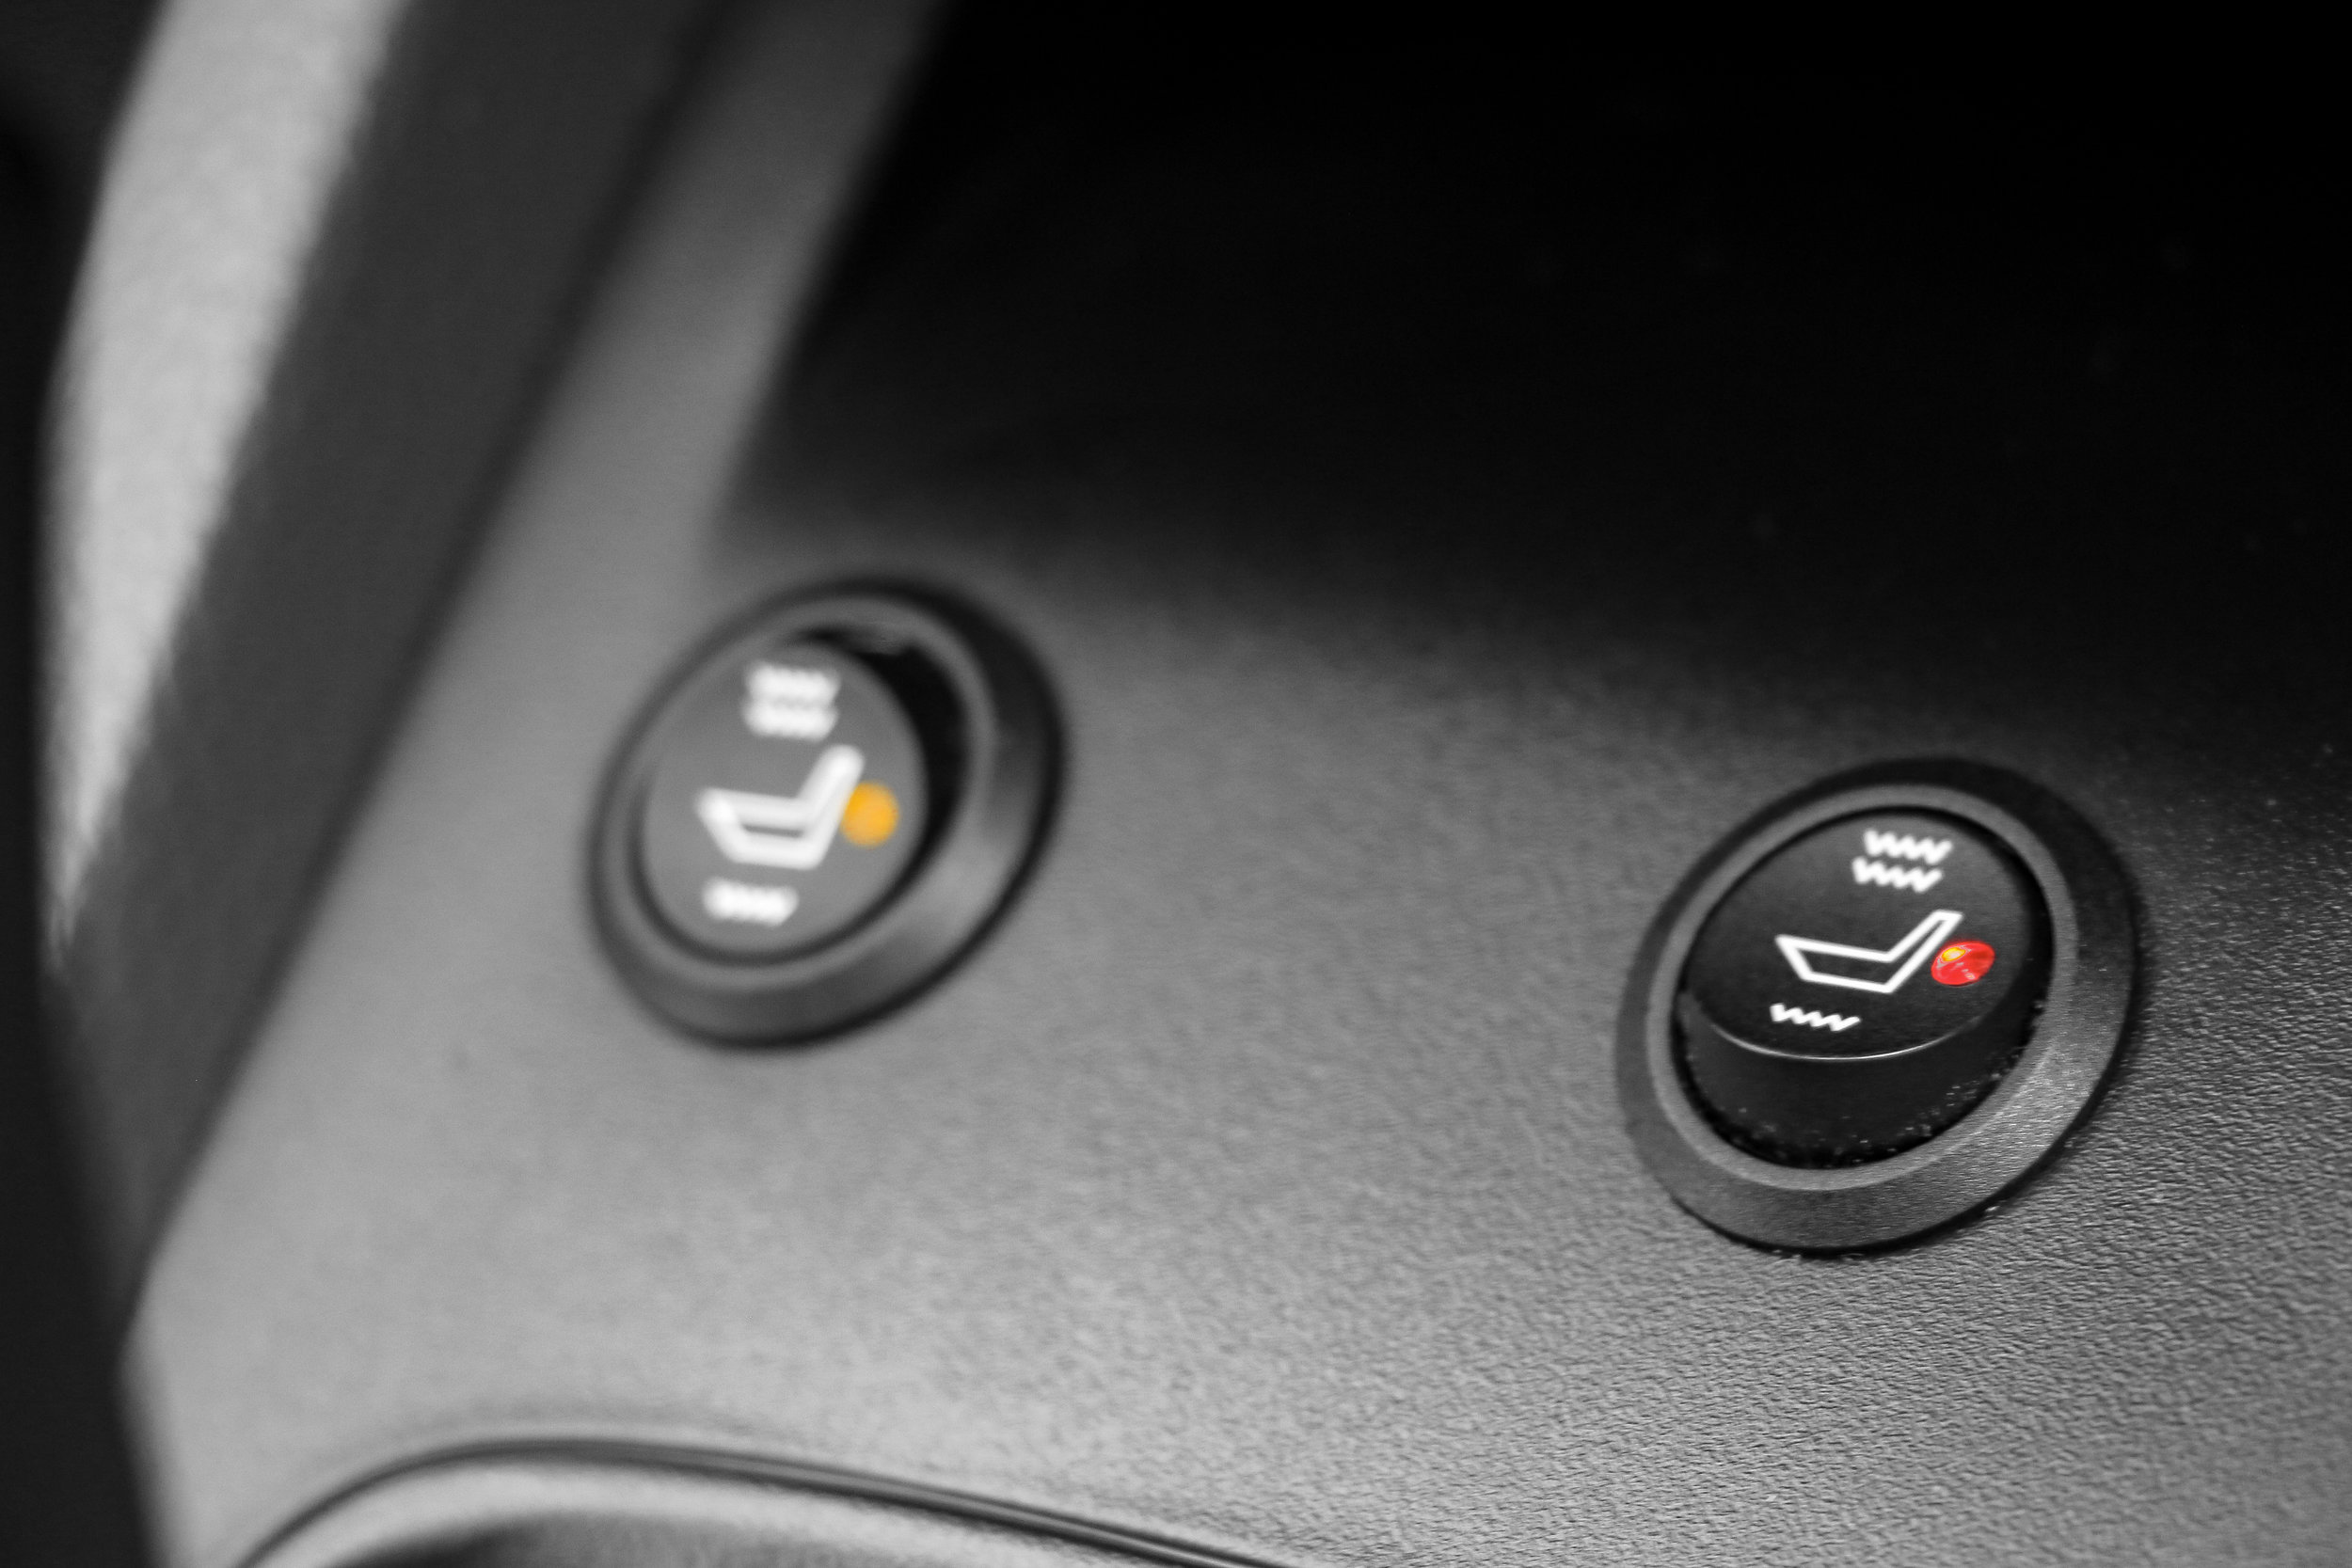 RVE-Seat-Heaters-Warmers-Leather-Seats-Upgrade.jpg